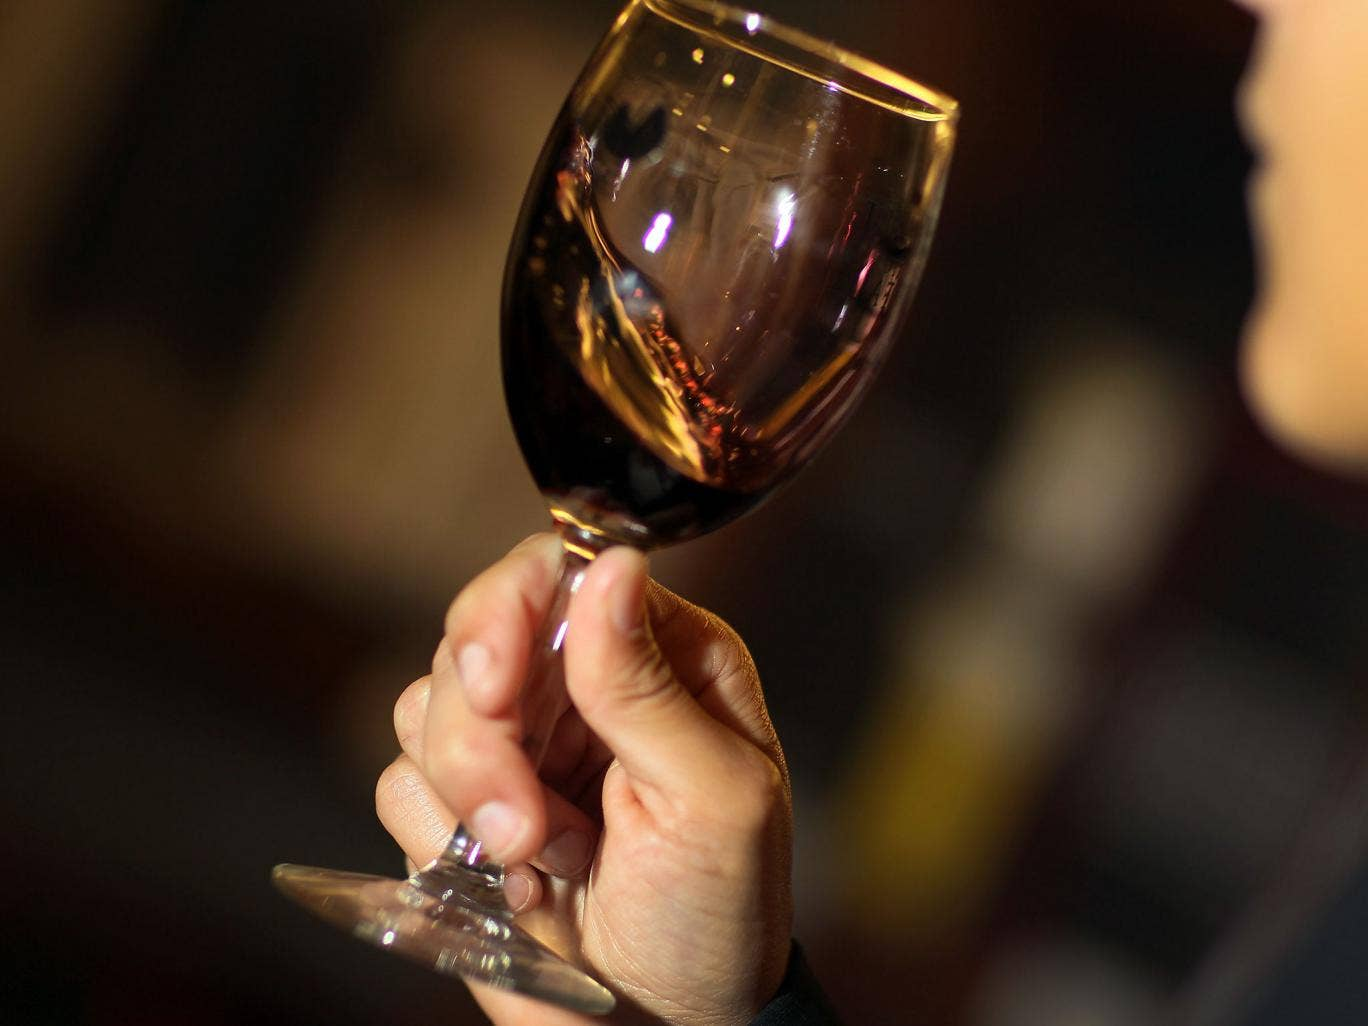 Watch Middle-class drinking epidemic' criticised video